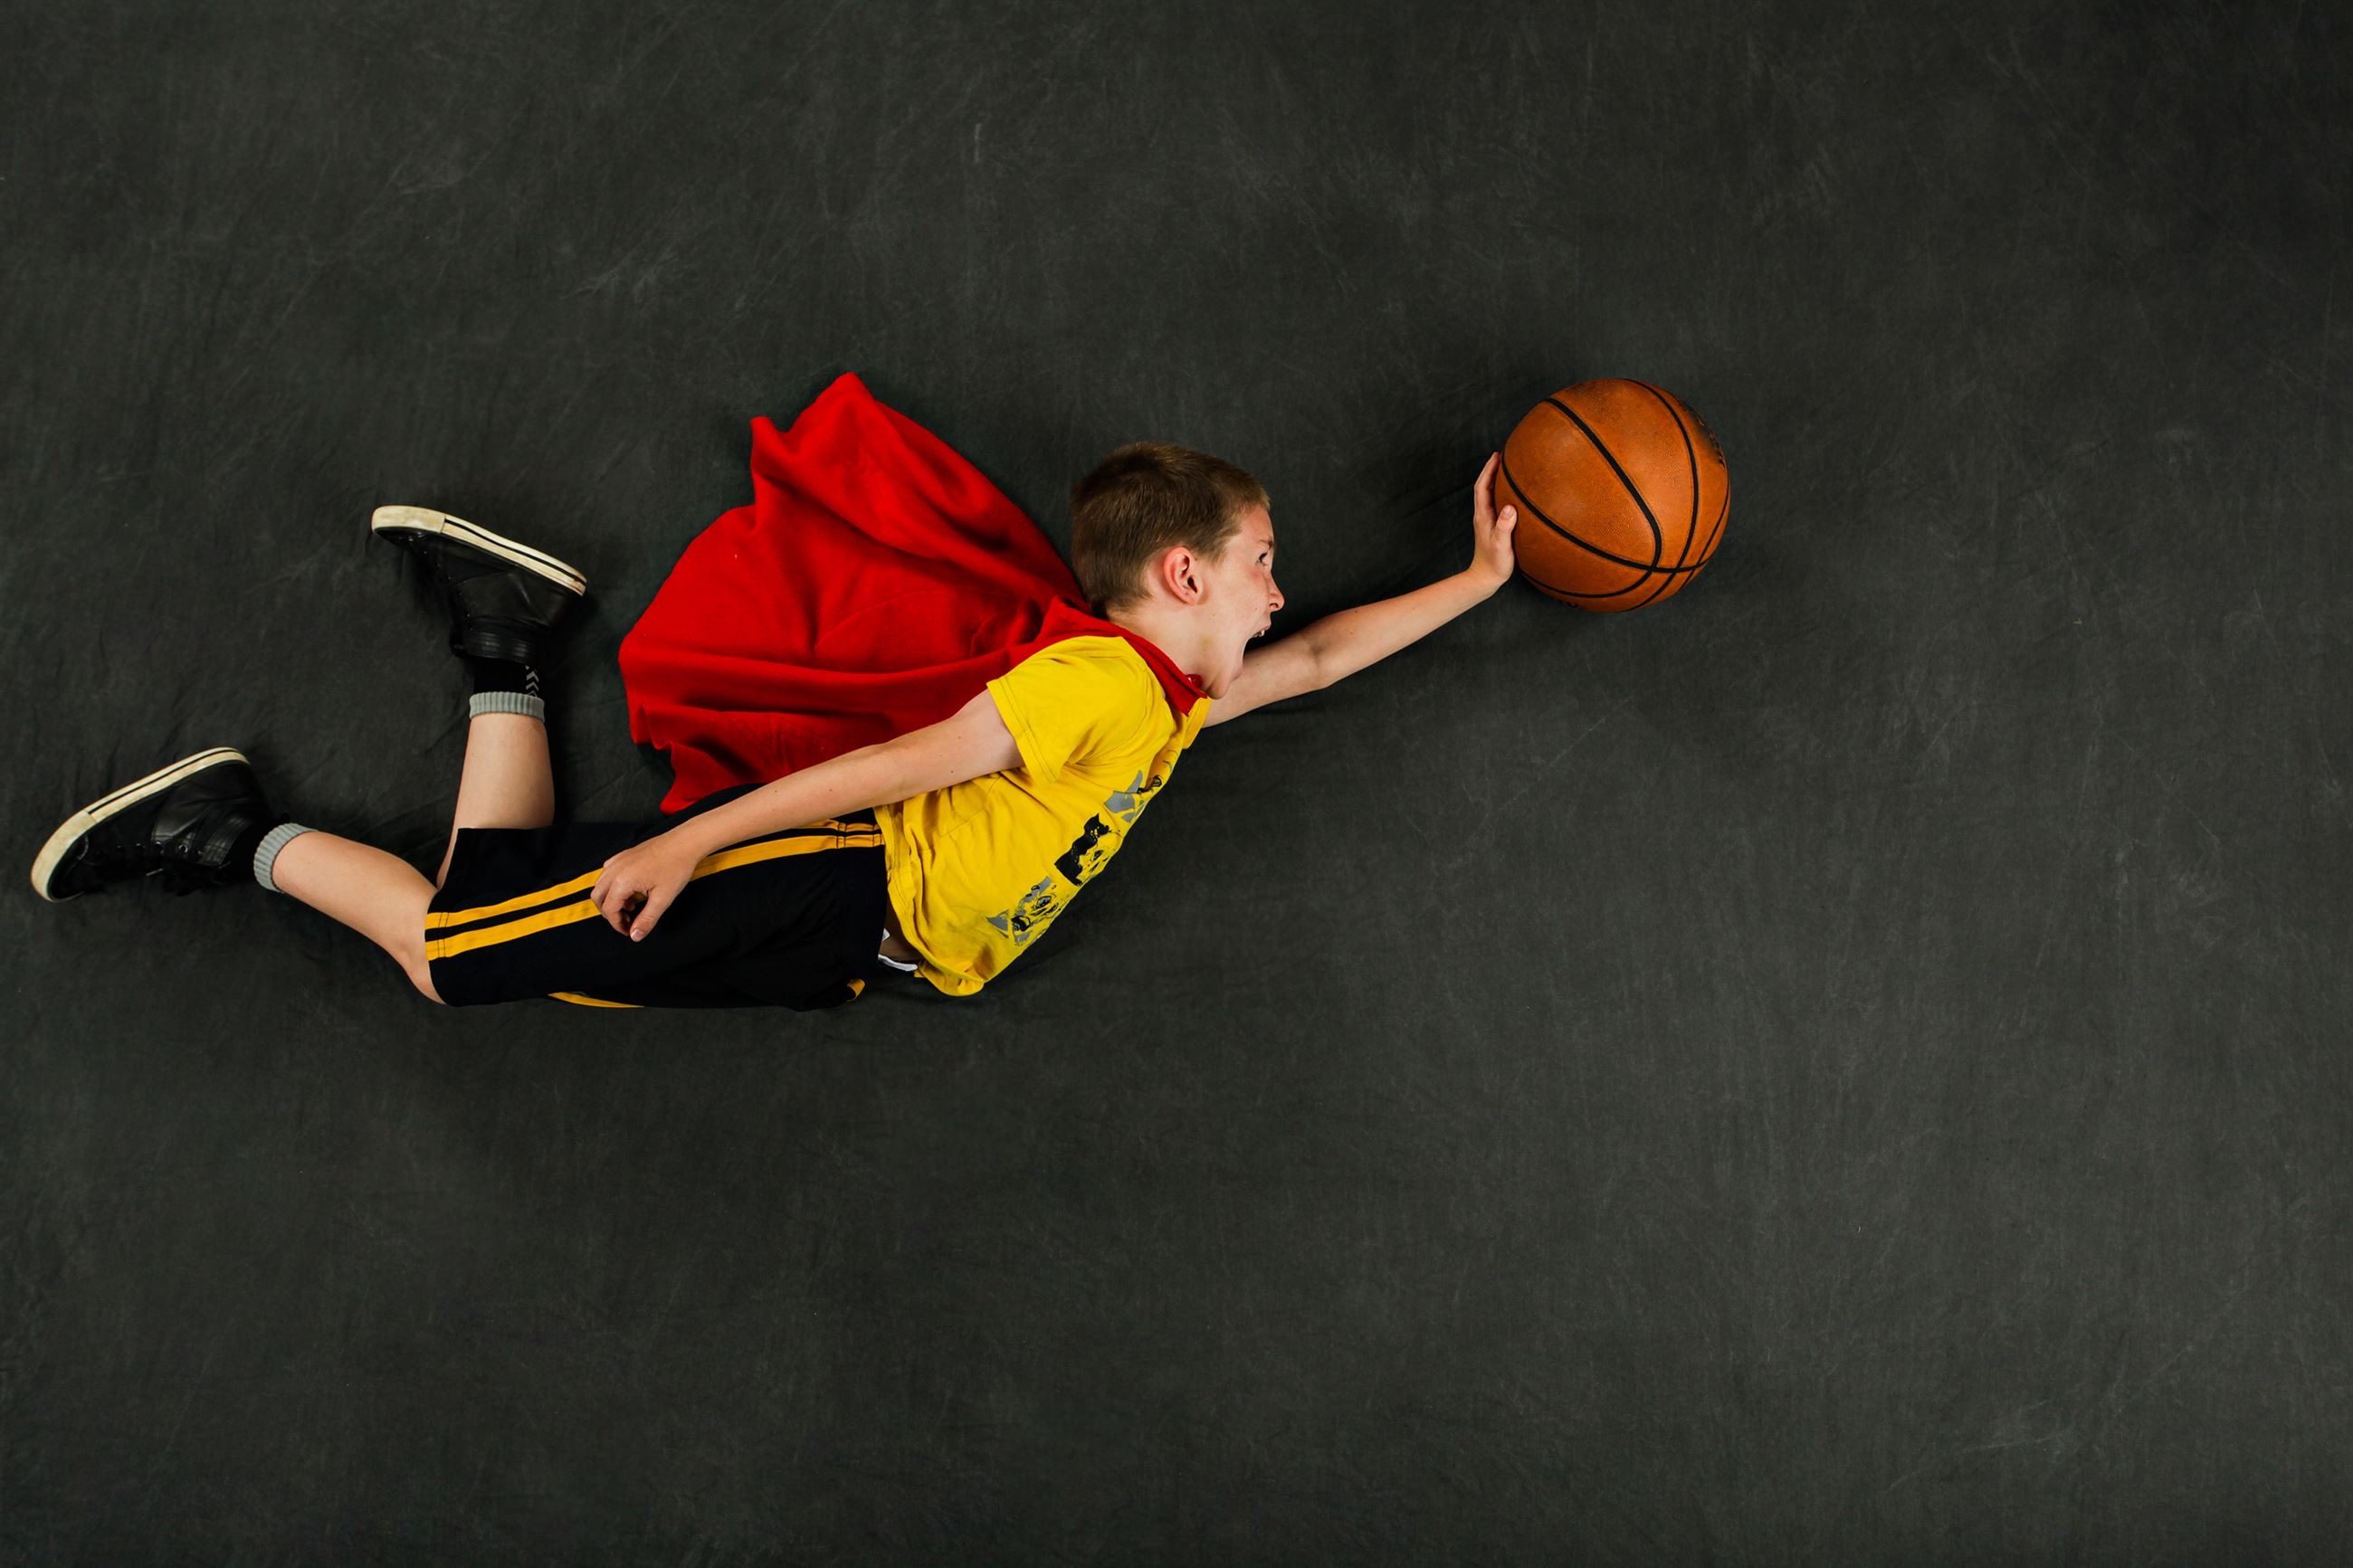 Boy wearing a cape and flying through the air with basketball